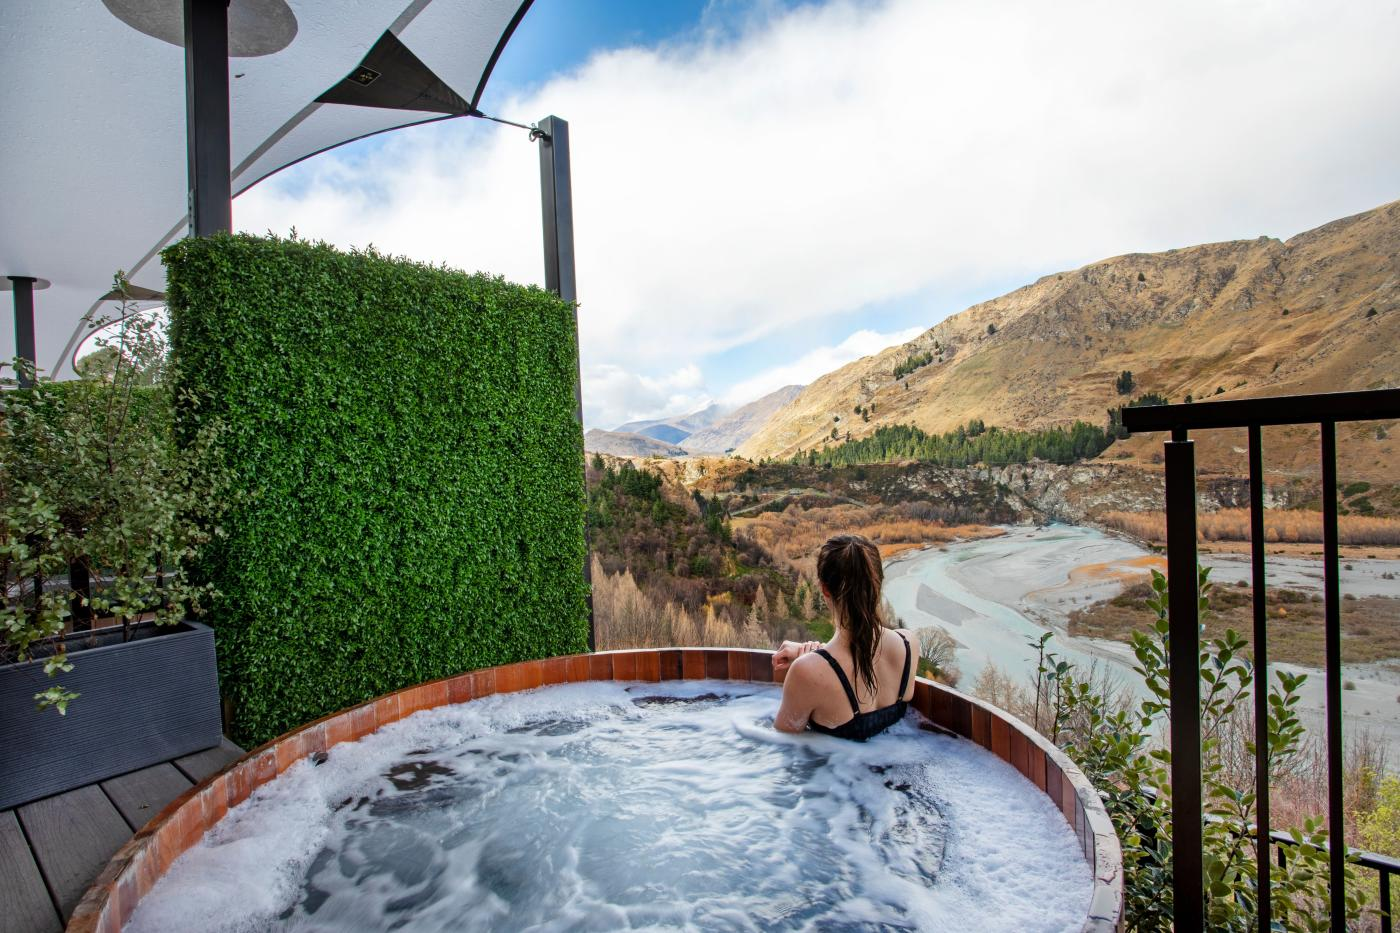 Outdoor Onsen, Onsen Hot Pools & Day Spa